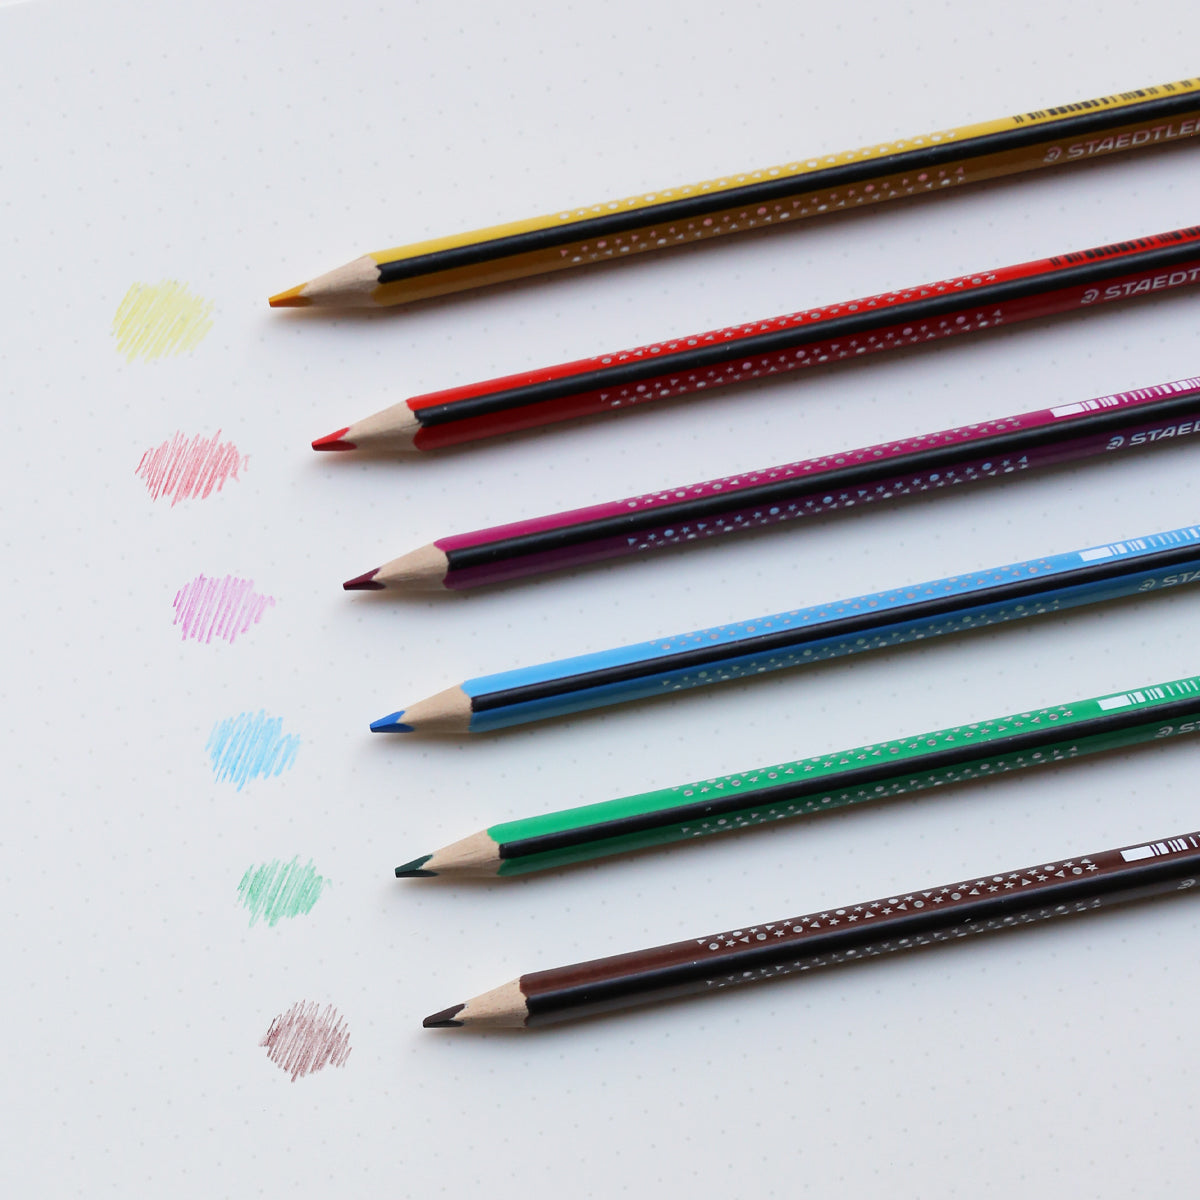 products/Staedtler_Colouredpencils_Setof6_02.jpg